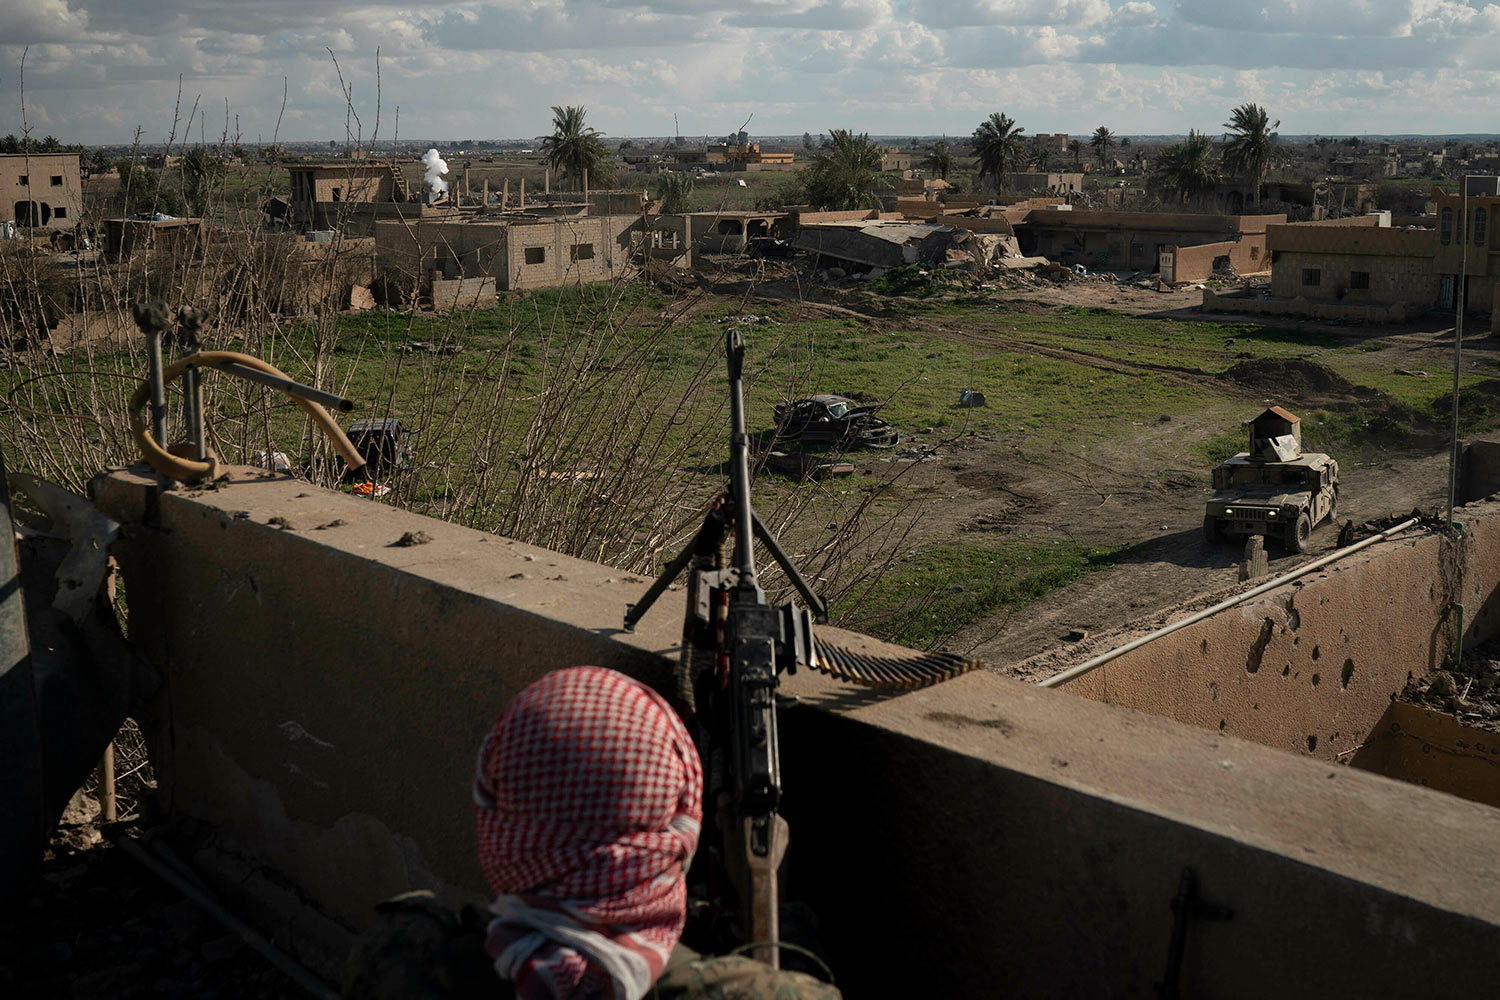 A U.S.-backed Syrian Democratic Forces (SDF) fighter stands atop a building used as a temporary base near the last land still held by Islamic State militants in Baghouz, Syria, Monday, Feb. 18, 2019. (AP Photo/Felipe Dana)